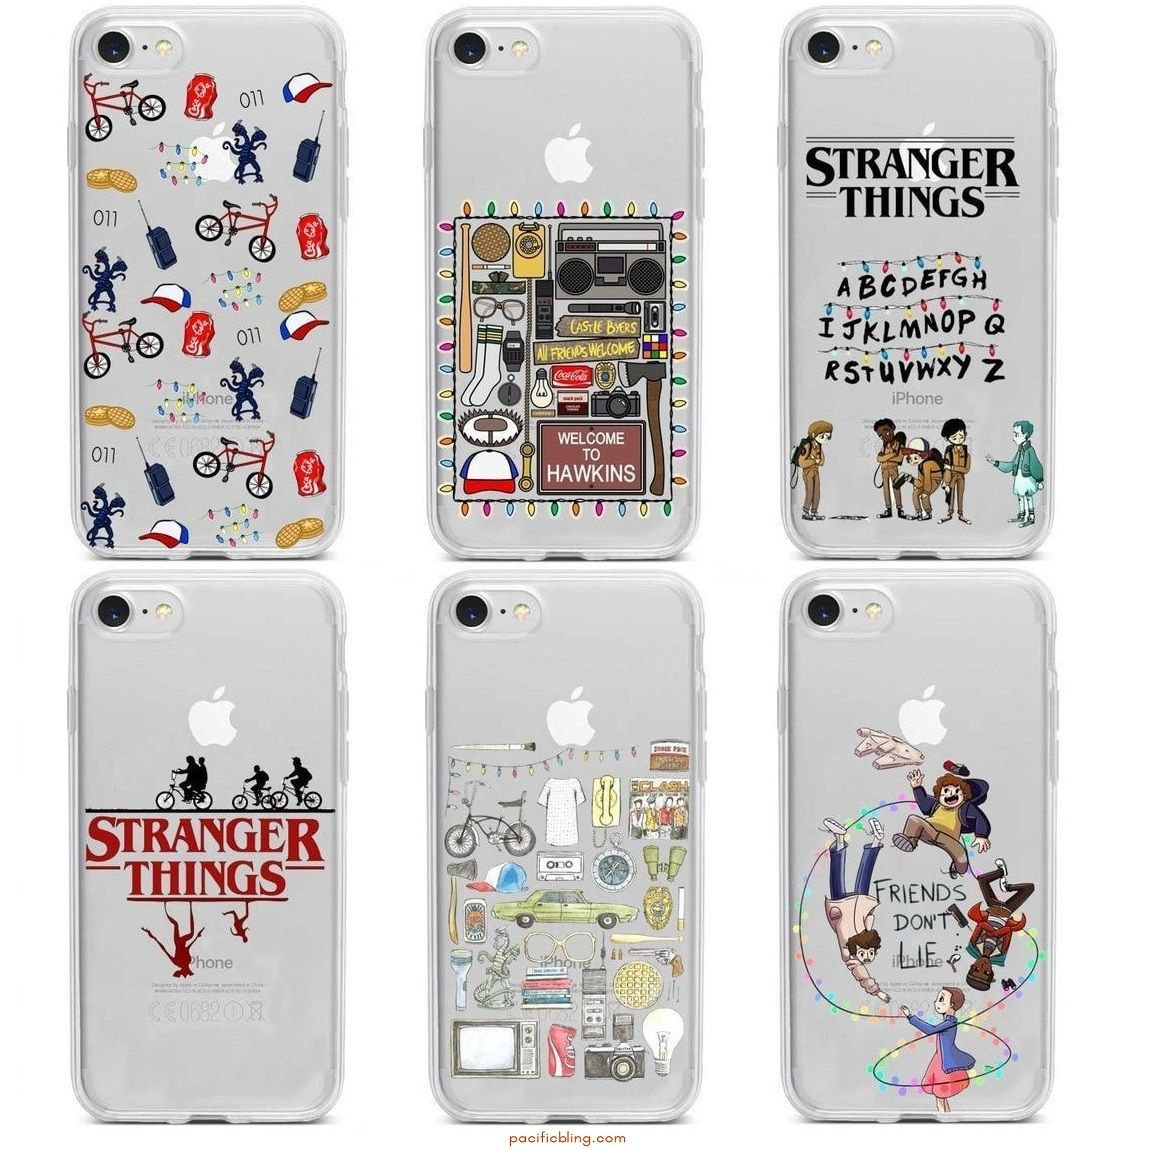 Stranger Things Clear Phone Cases #seriesonnetflix